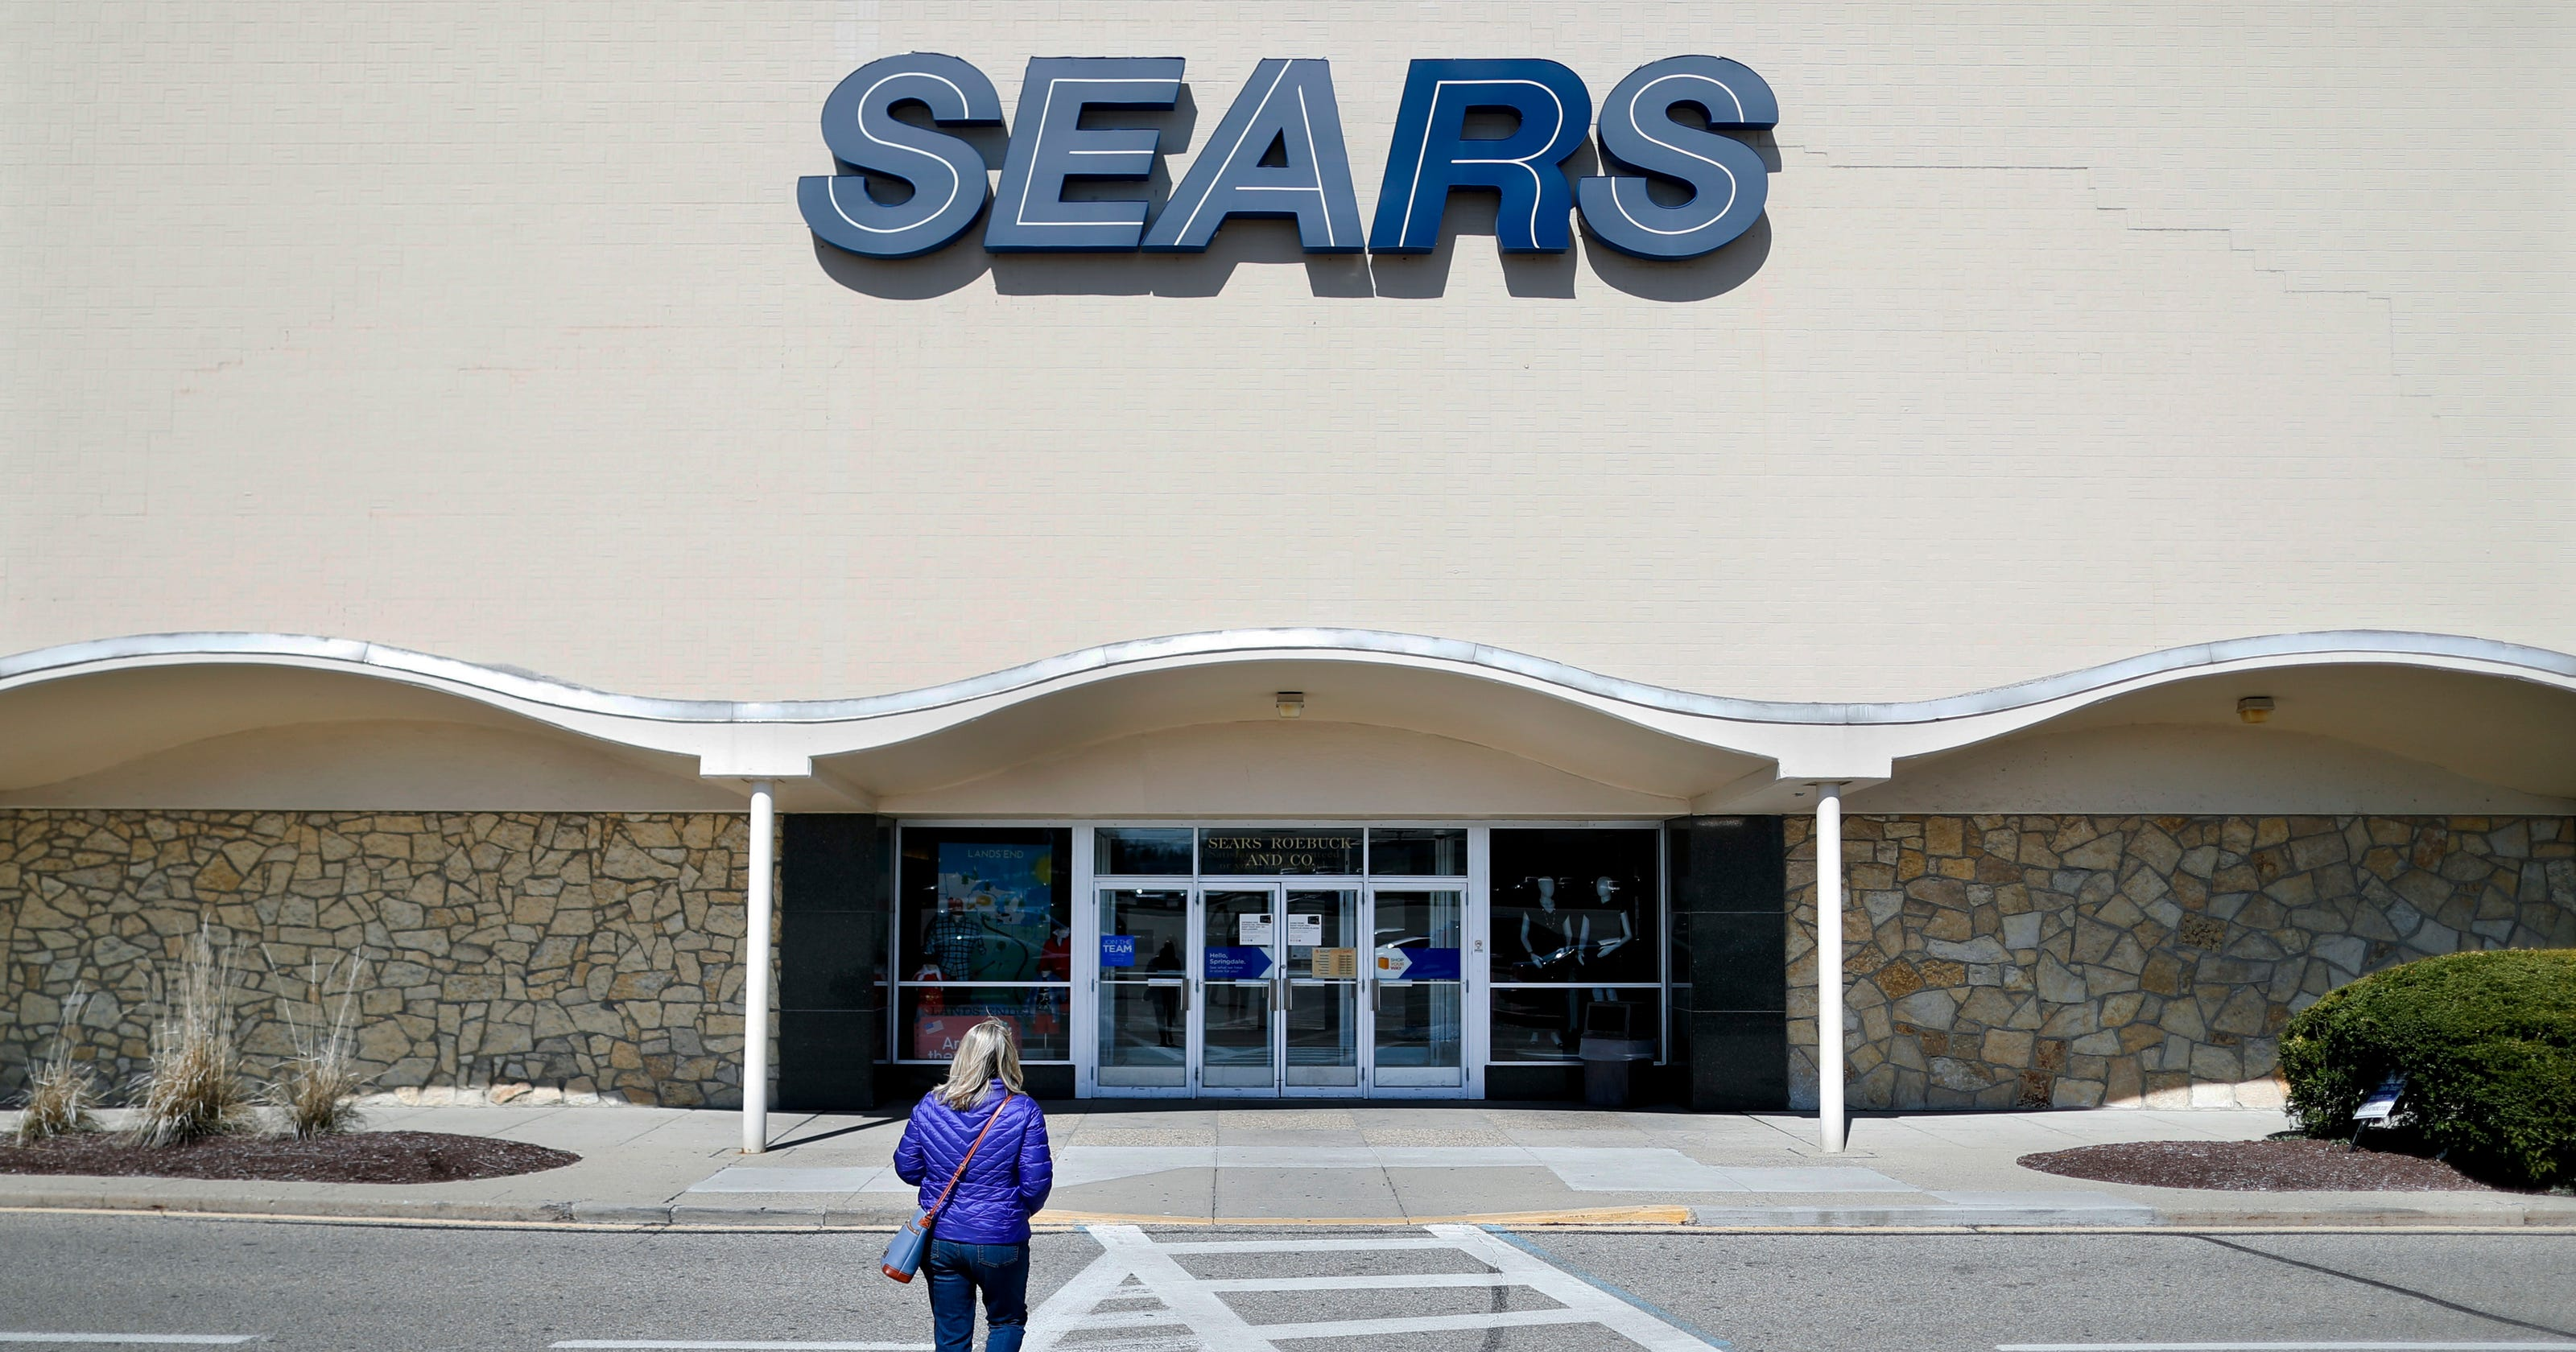 Sears to sell up to 140 more stores, could close more locations